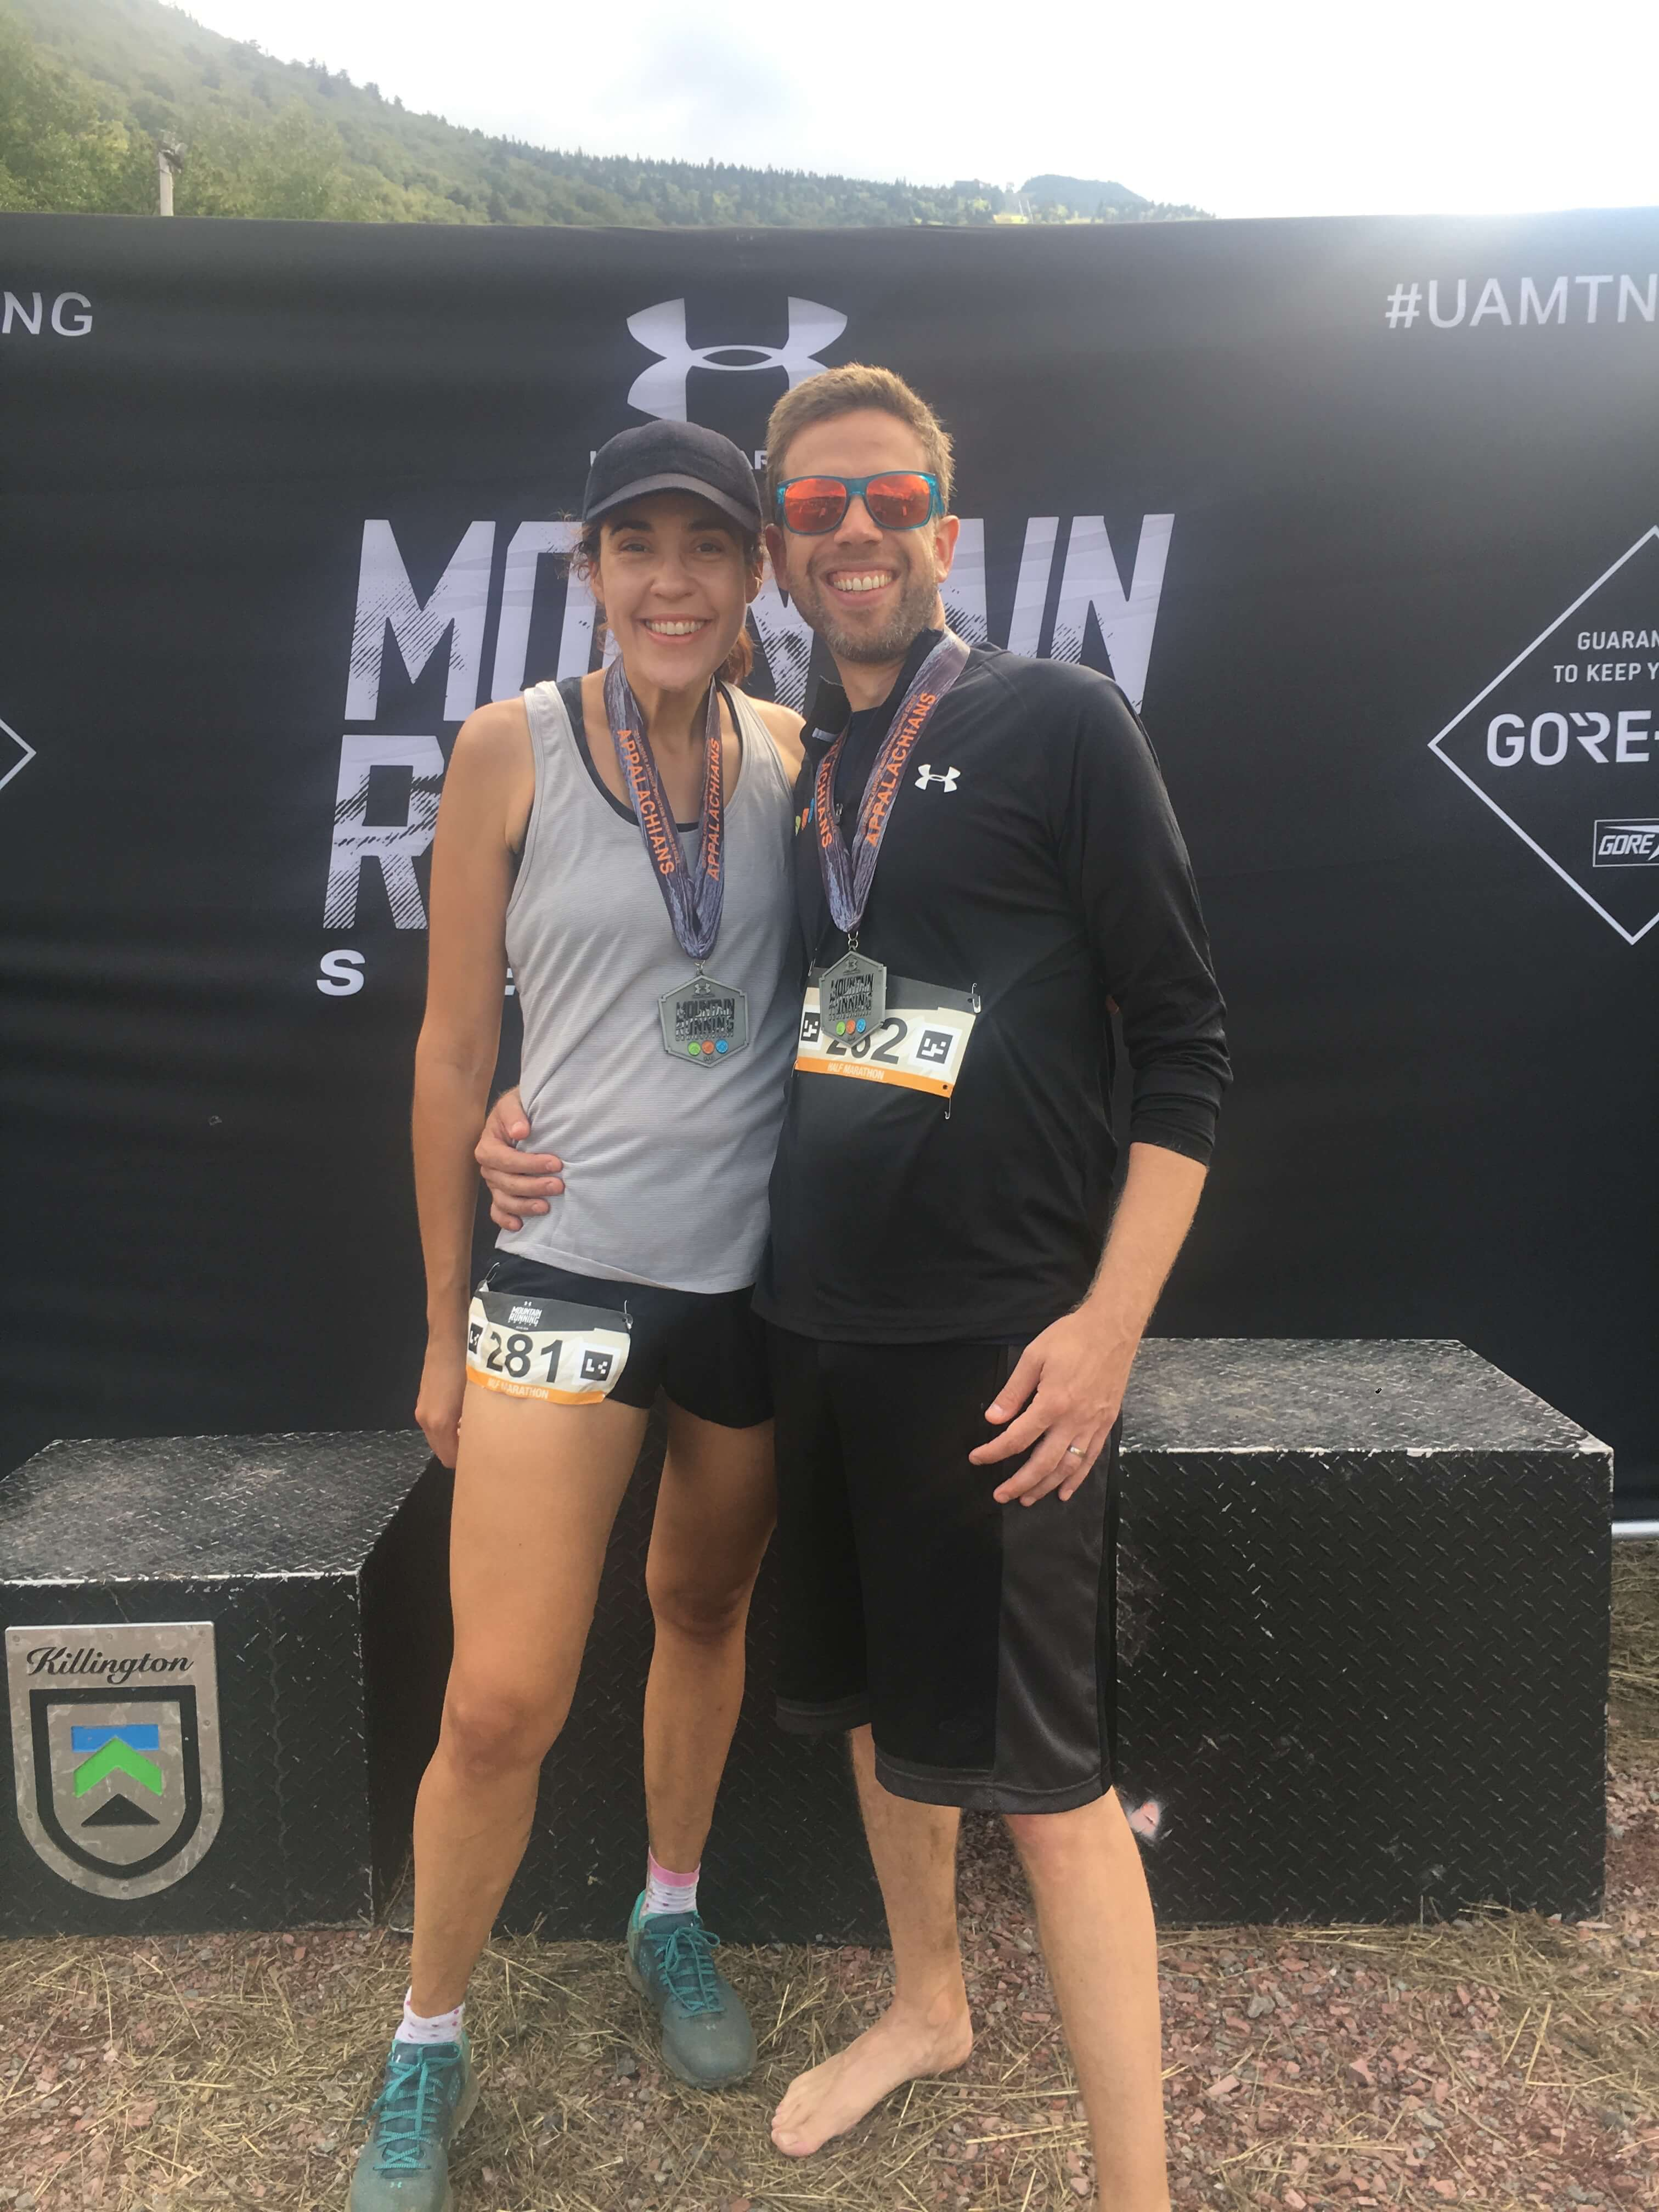 end of the ua mountain running experience